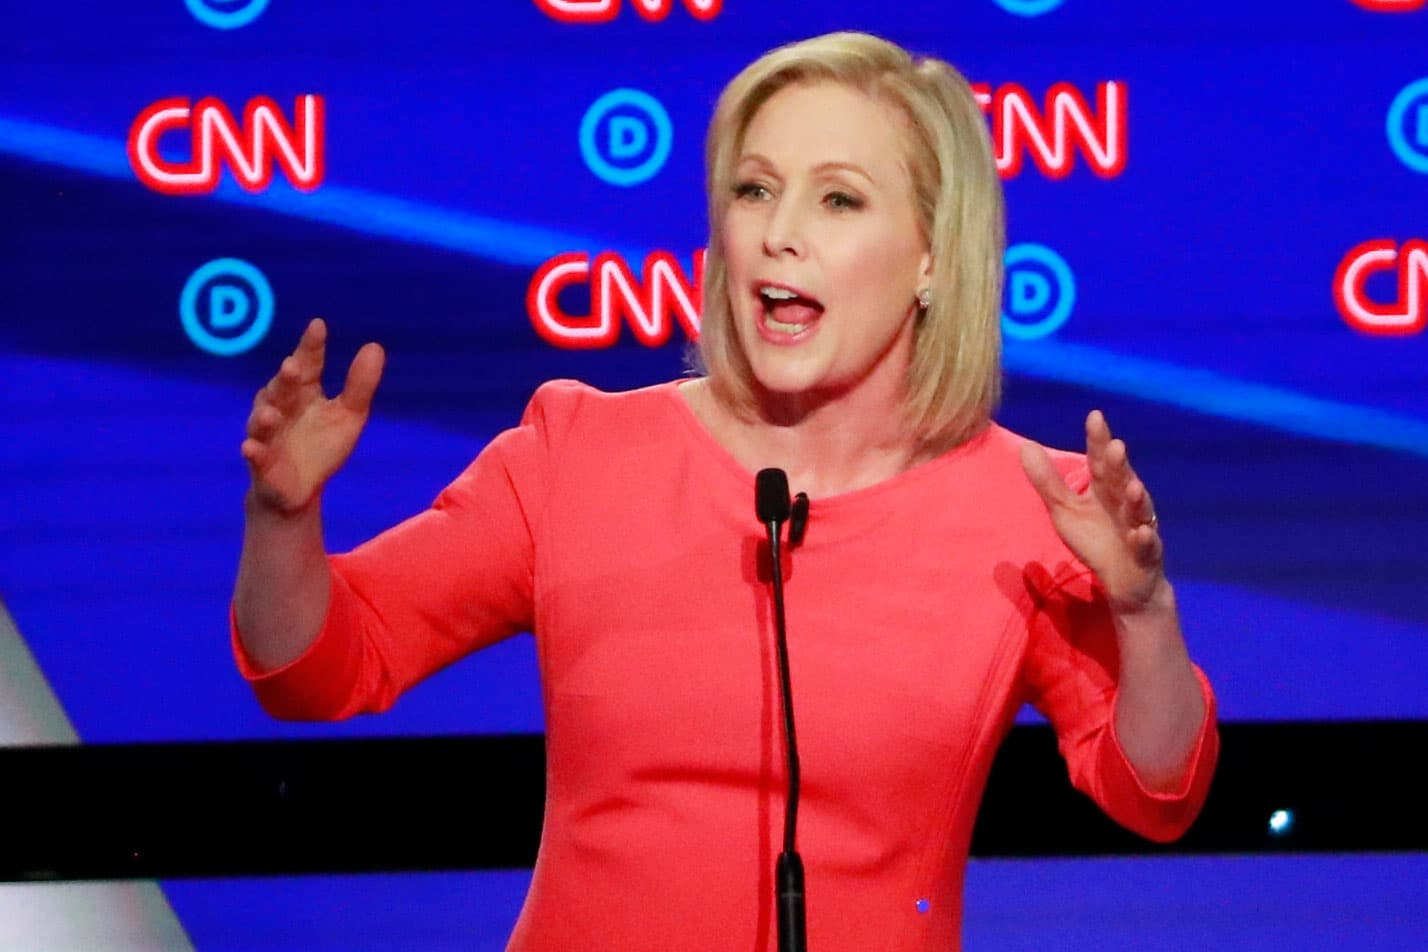 2020 candidate Kirsten Gillibrand, Rep. Bass say their infrastructure bill will boost local jobs, rebuild communities